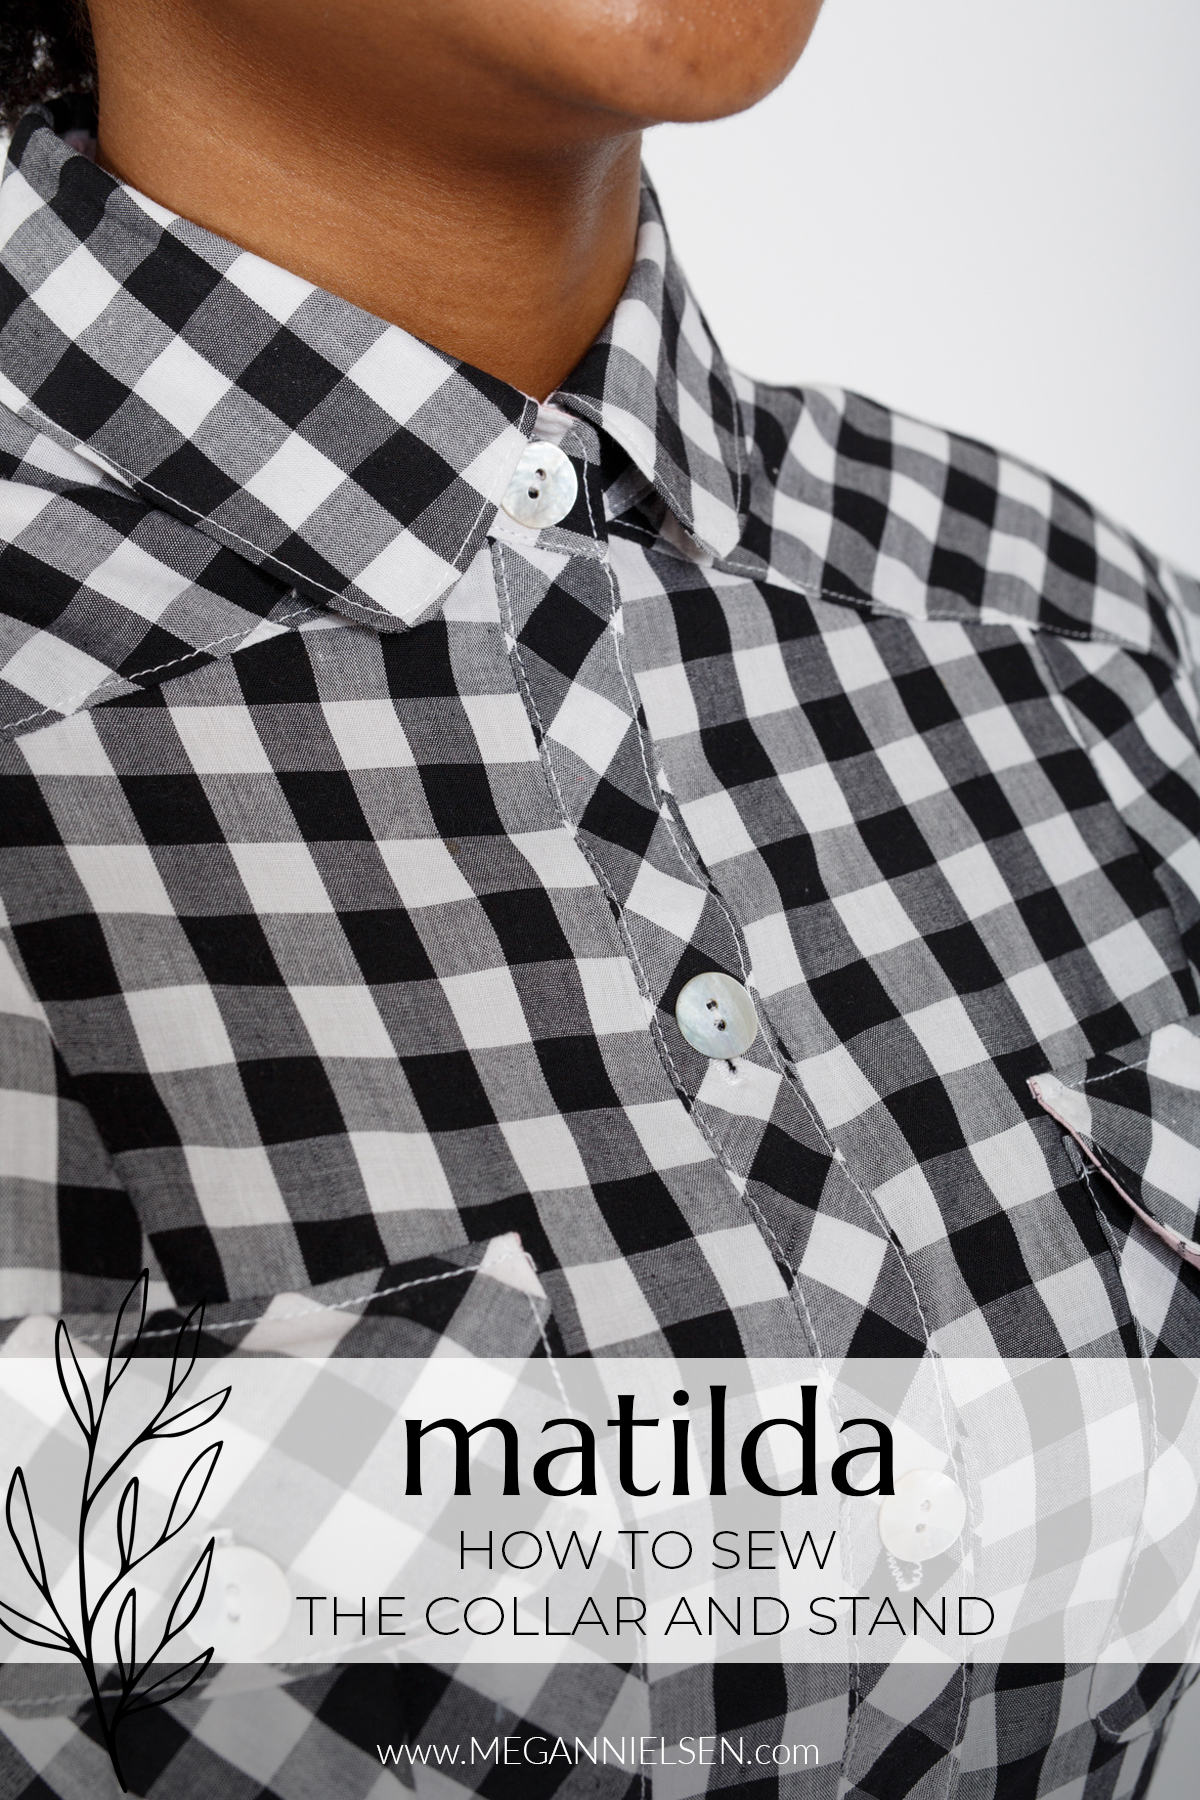 Matilda - How to sew the collar and stand